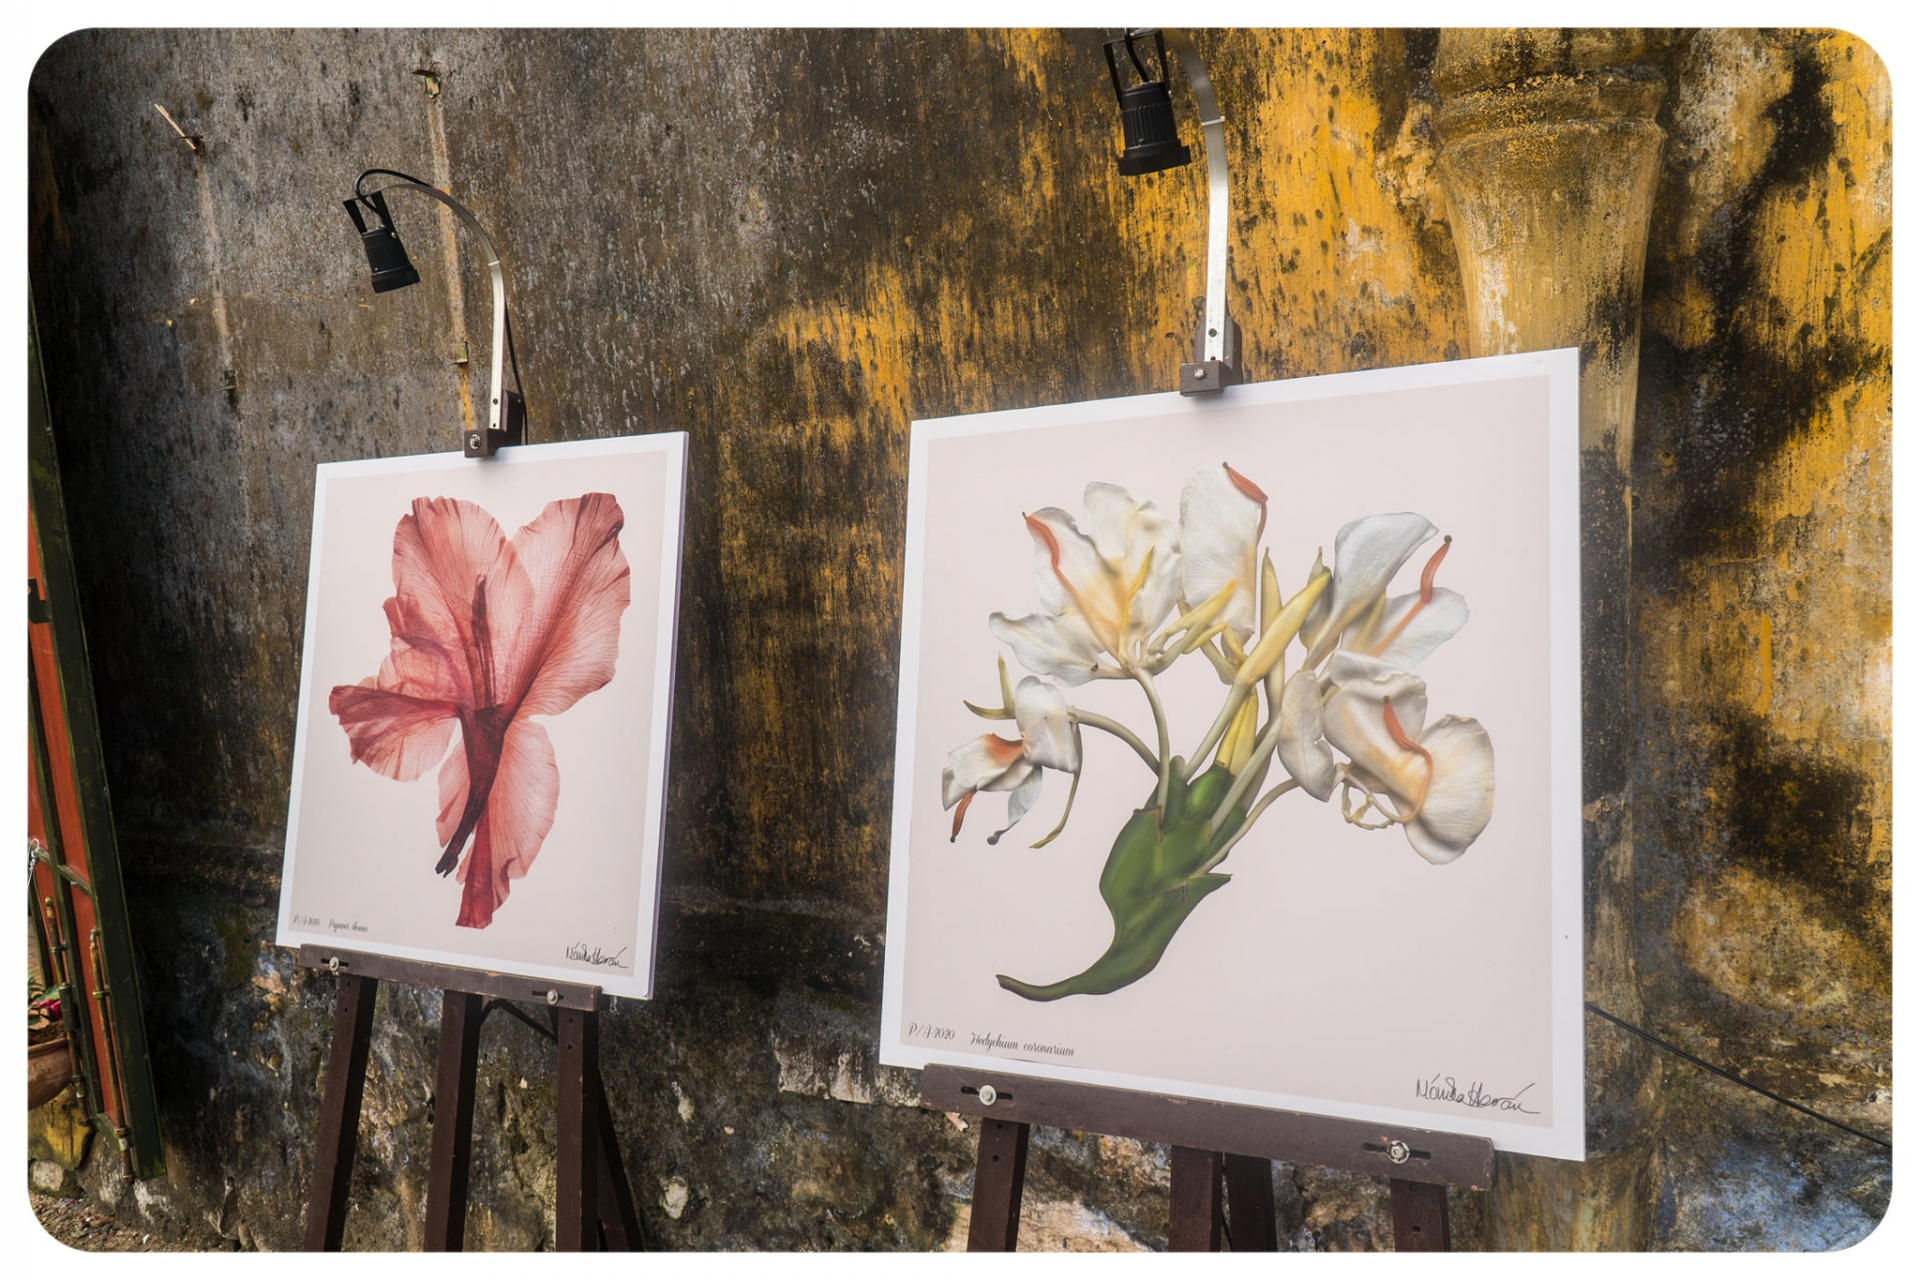 Exhibition introduces colombian flowers in hoi an city